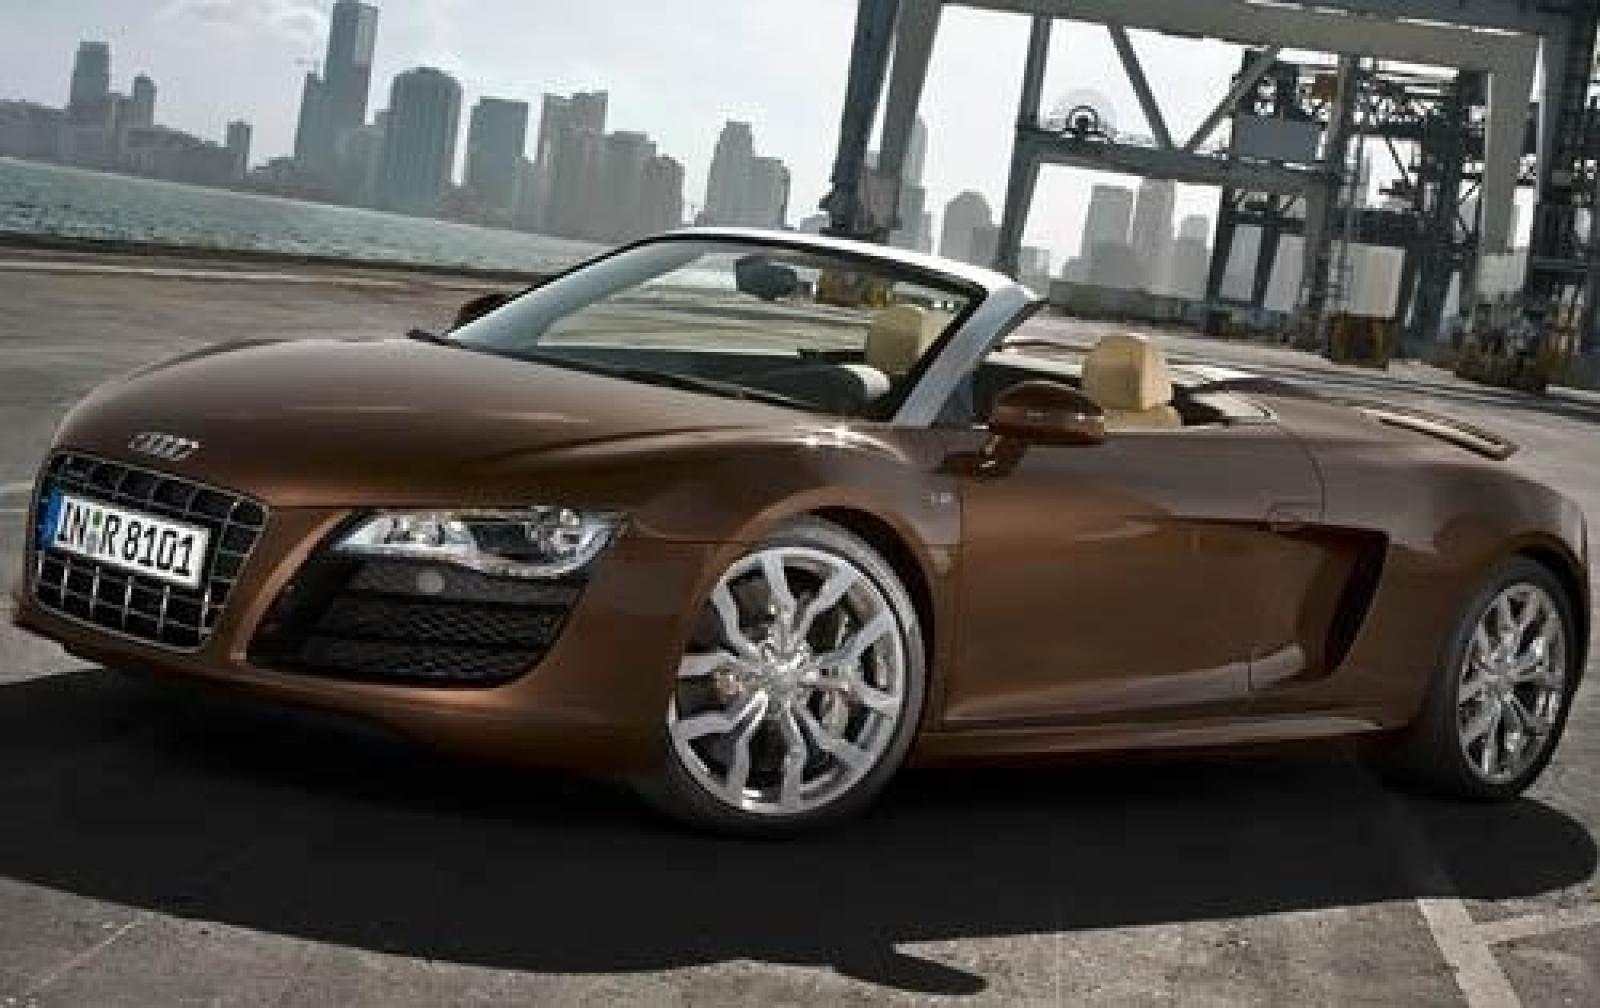 2011 audi r8 information and photos zomb drive. Black Bedroom Furniture Sets. Home Design Ideas